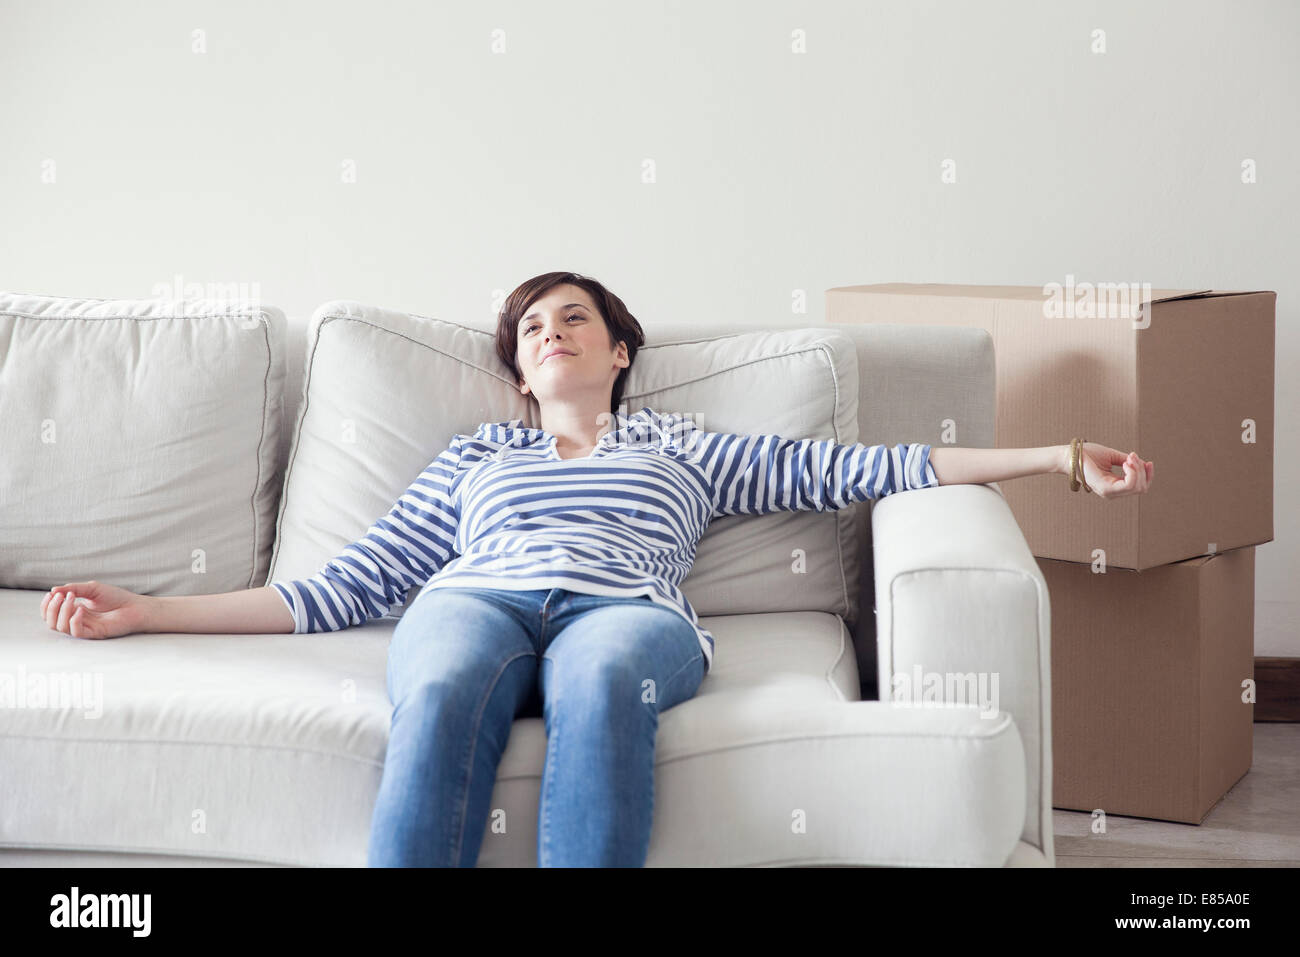 Woman resting on sofa while moving house - Stock Image